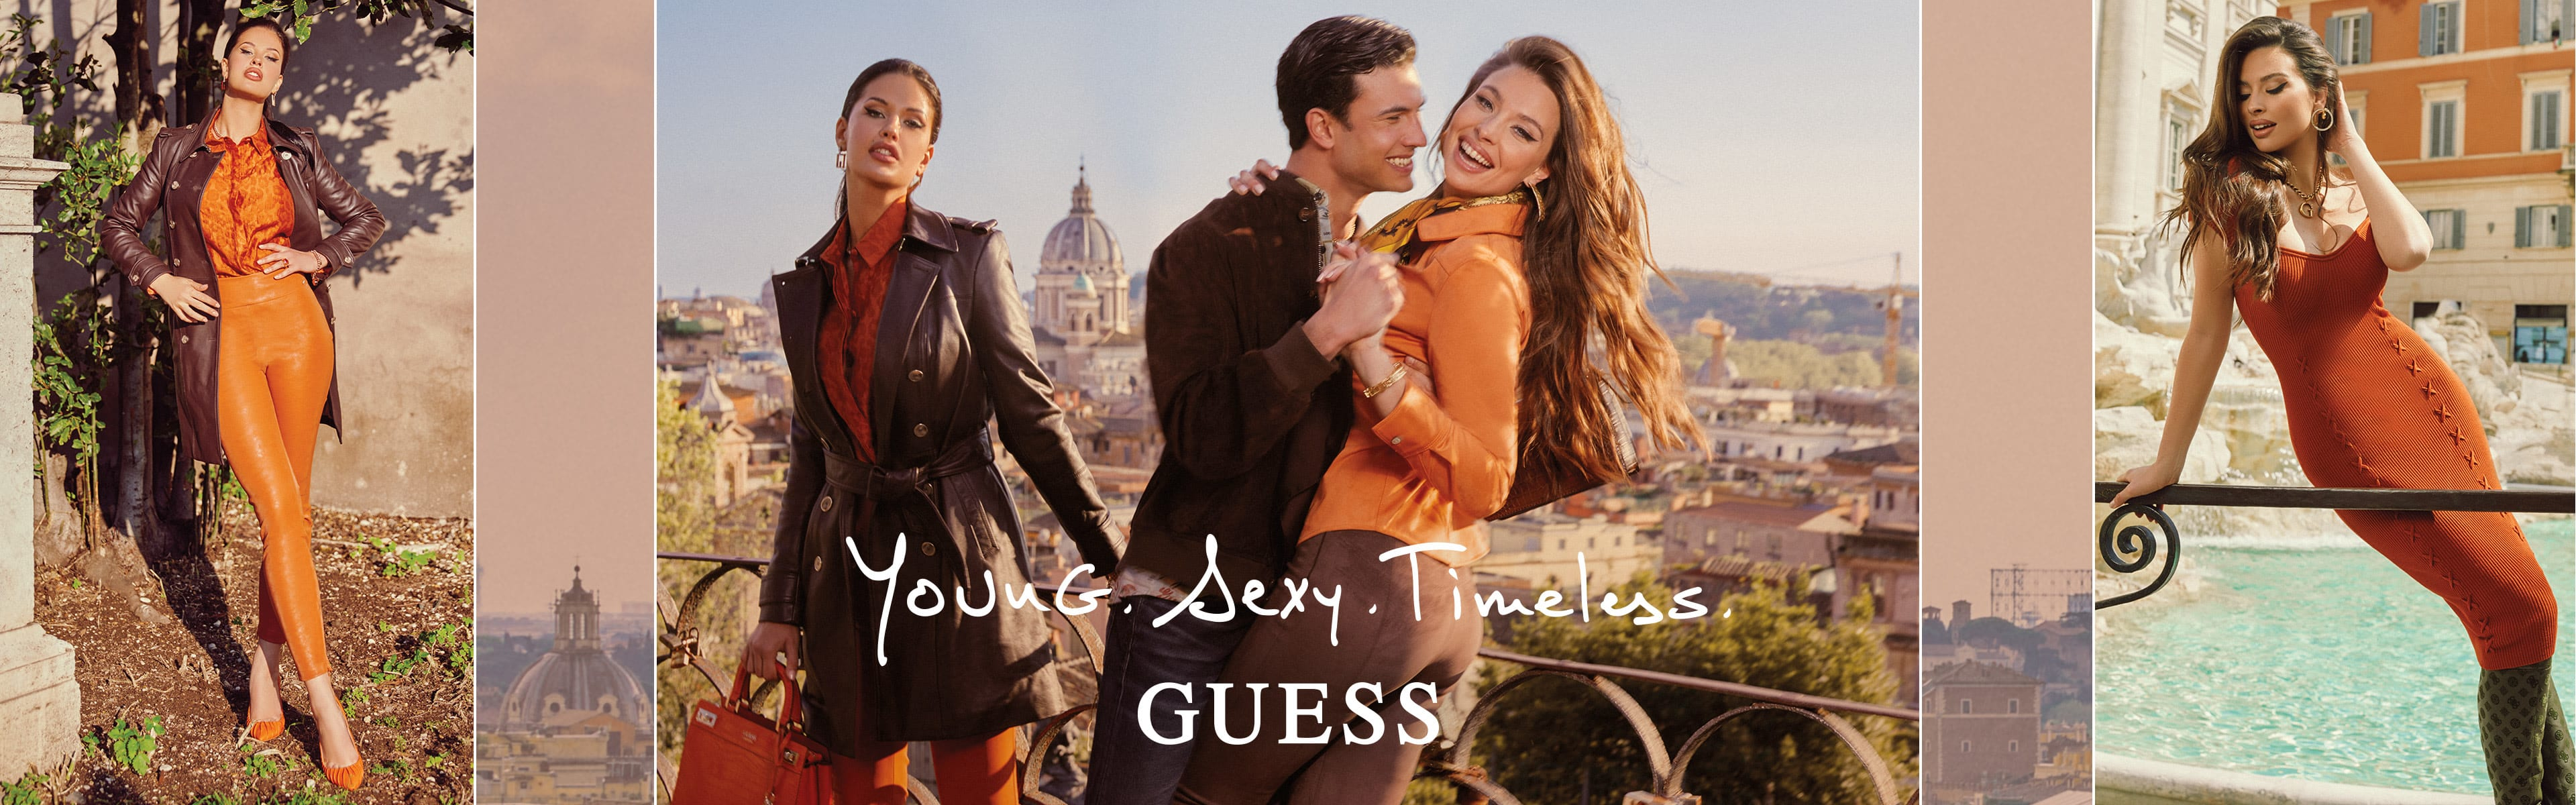 GUESS Fall Campaign lookbook 1